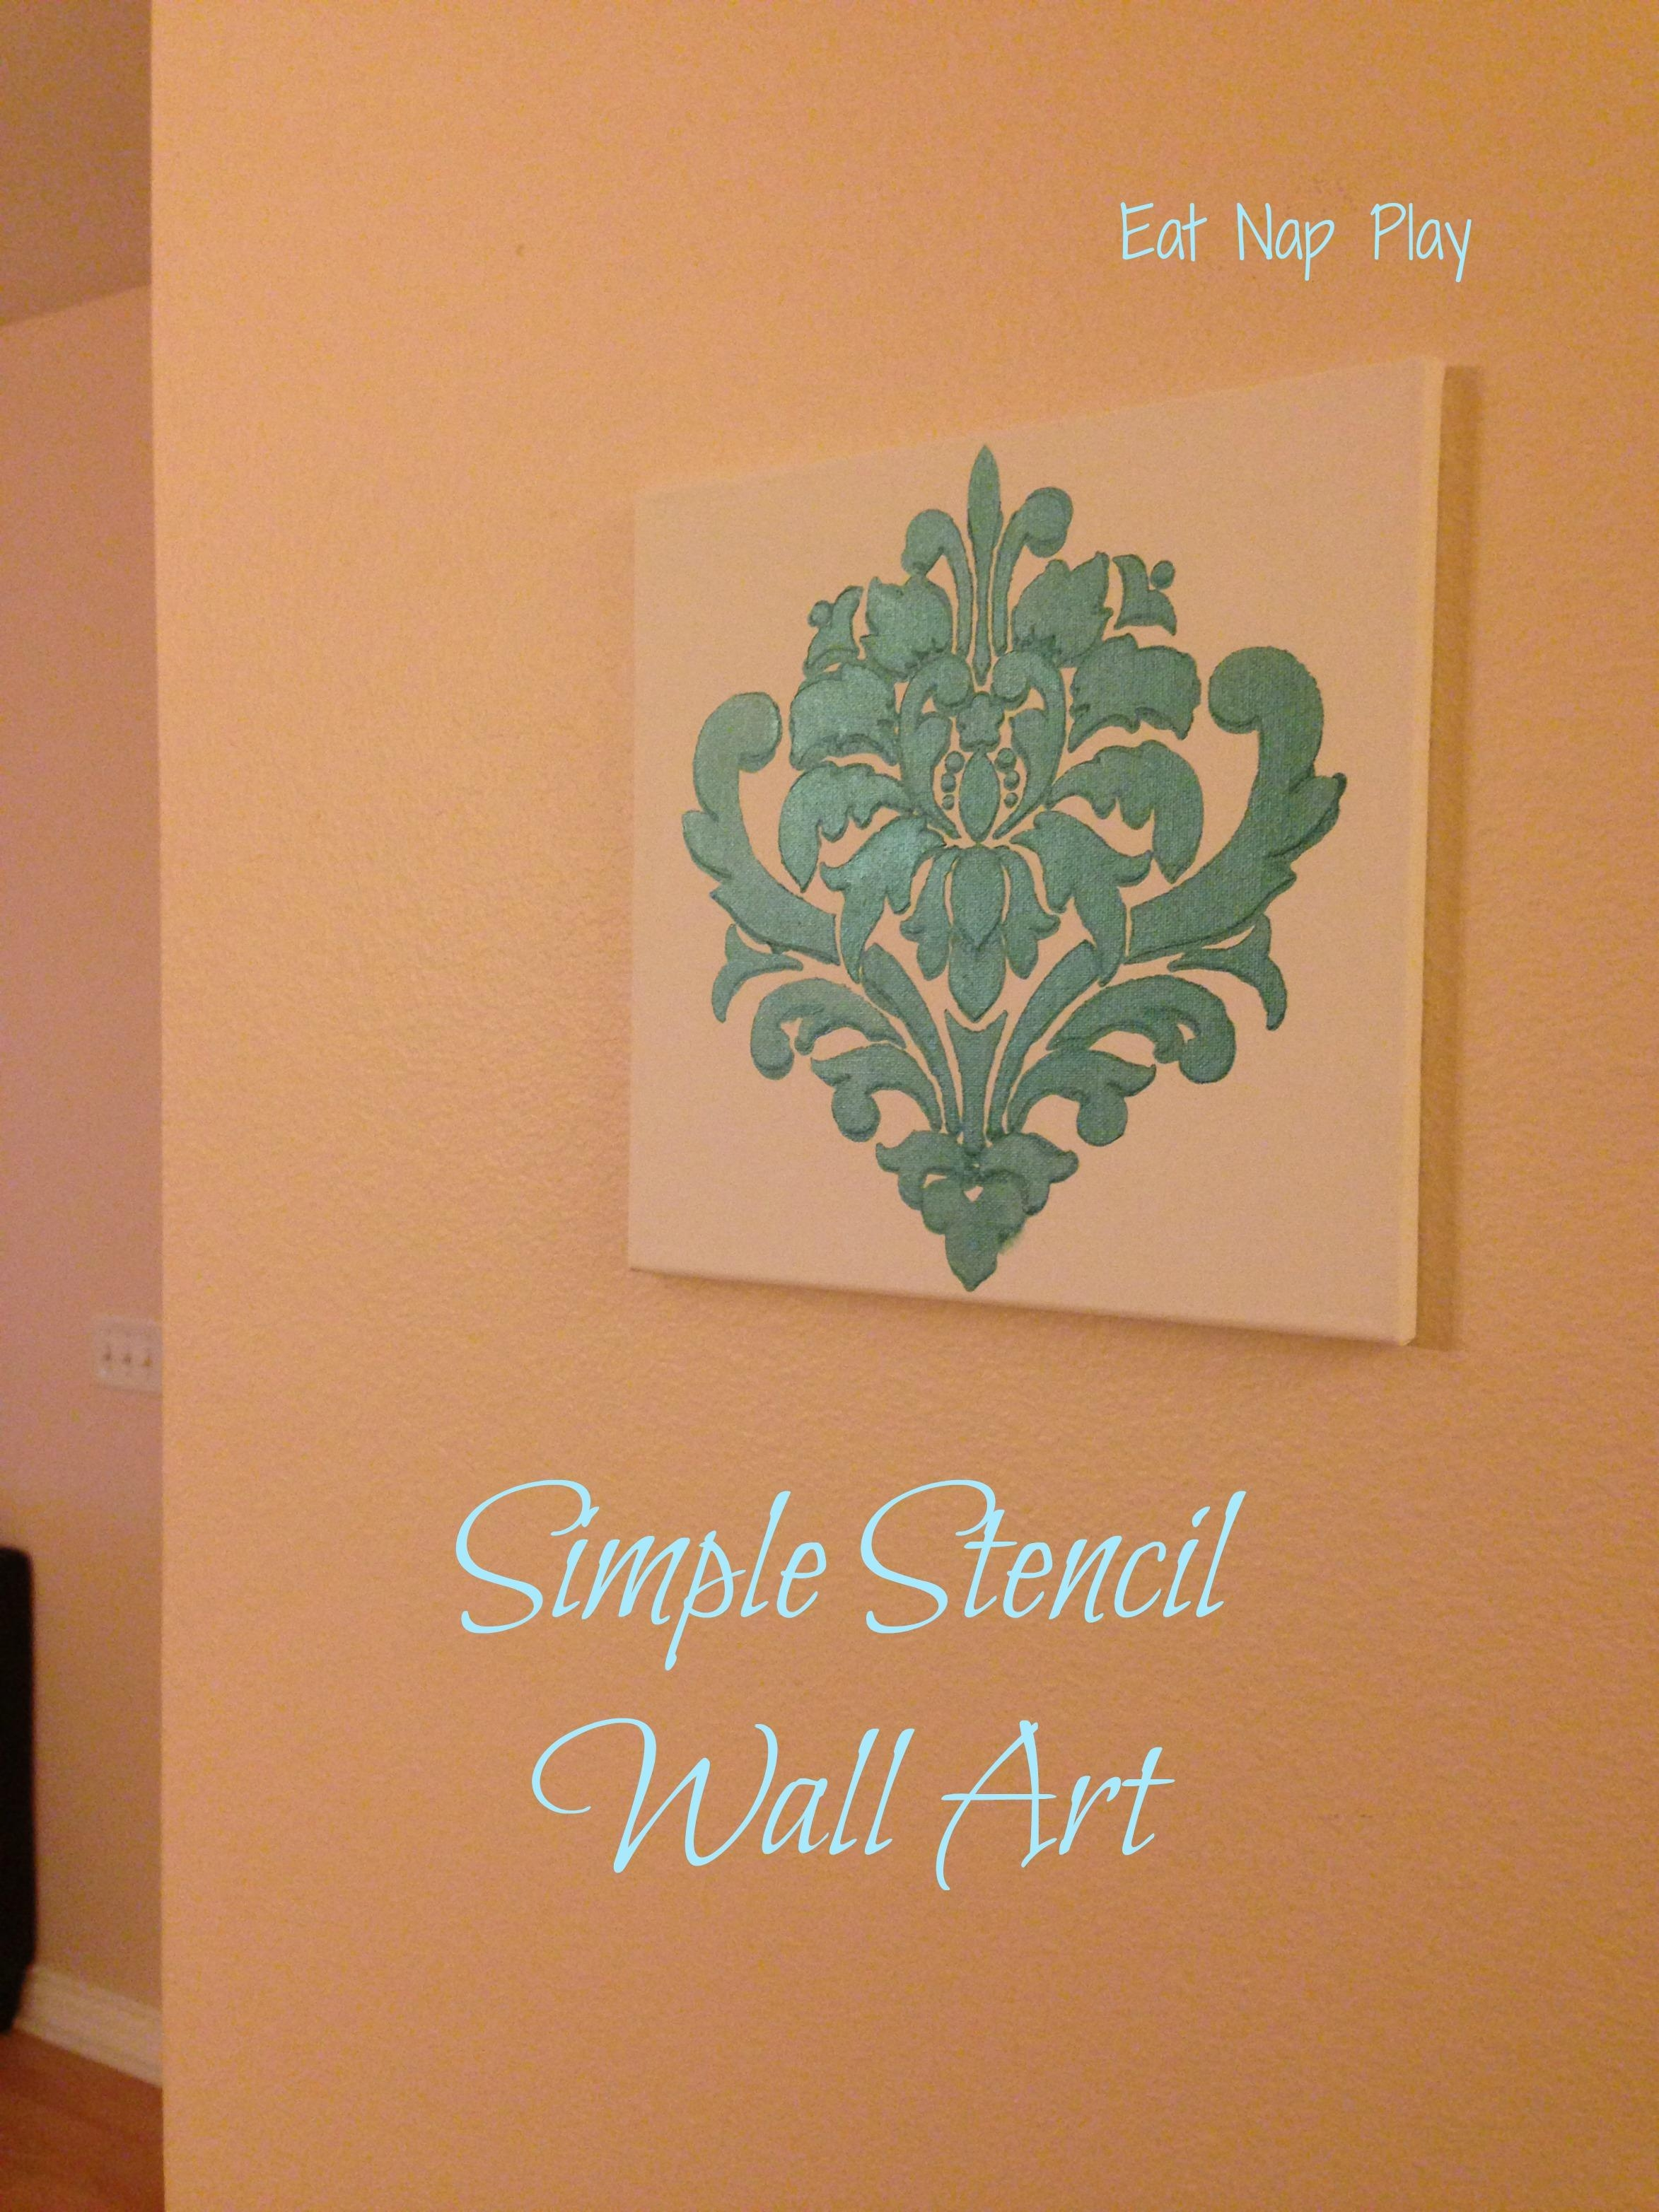 Simple Stencil Wall Art Project | Eatnapplay In Stencil Wall Art (Image 14 of 20)